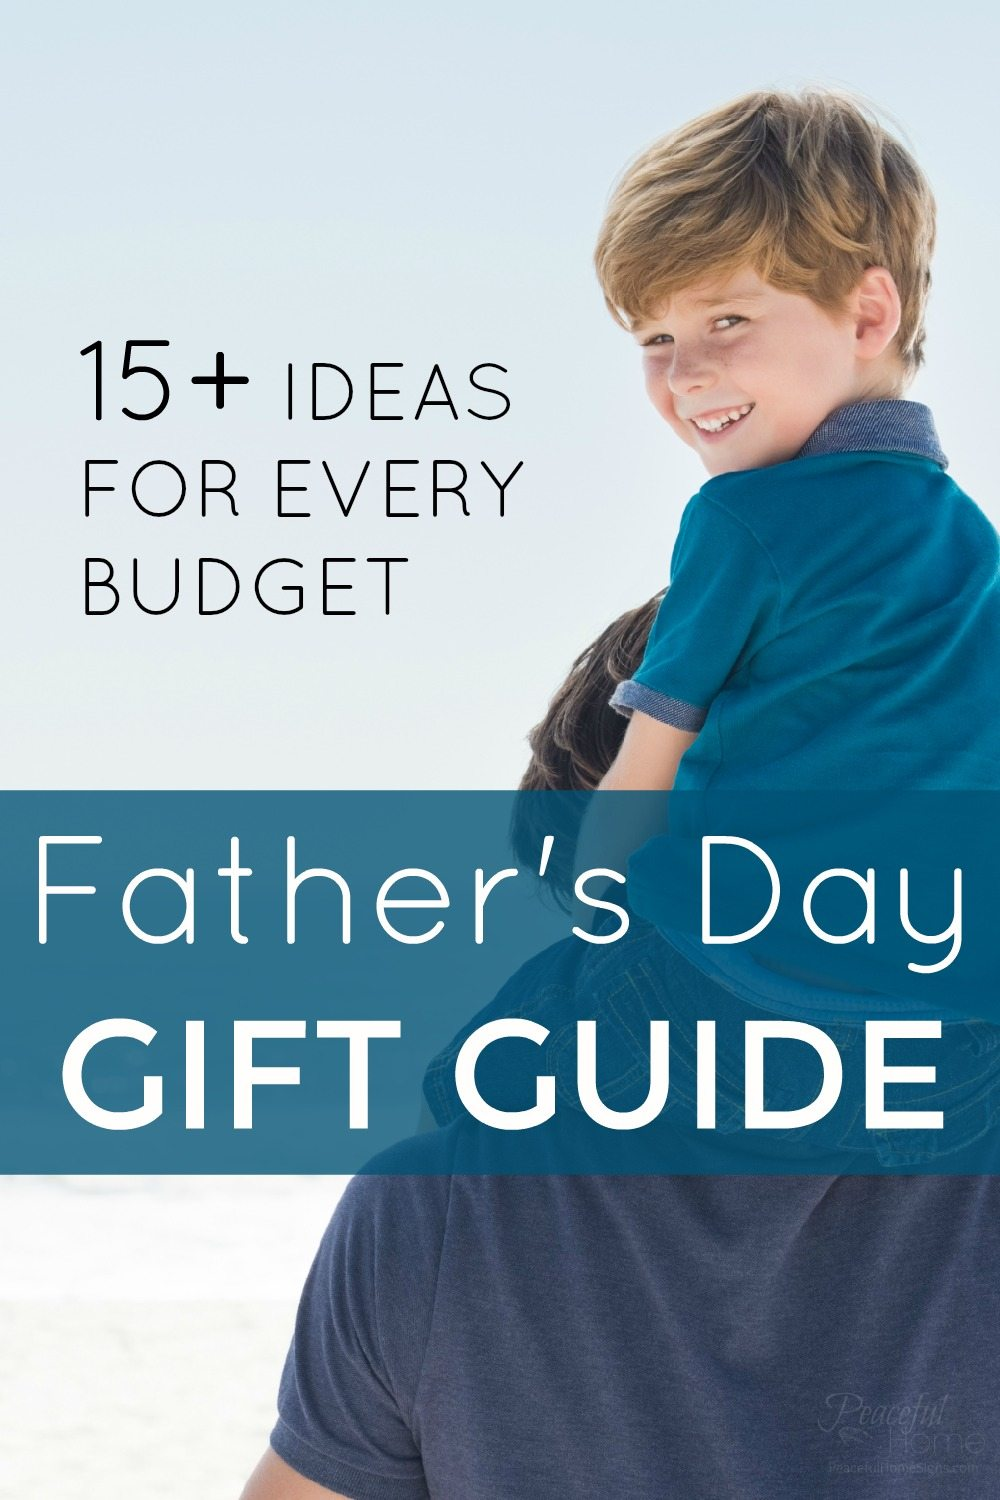 Father's Day Gift Guide | Father's Day 2014 | Gift for Dad | Gift for Uncle | Gift for Husband | Gift for Grandpa | DIY Father's Day Gift | Gift for Him | Father's Day Gift Ideas | When is Fathers Day